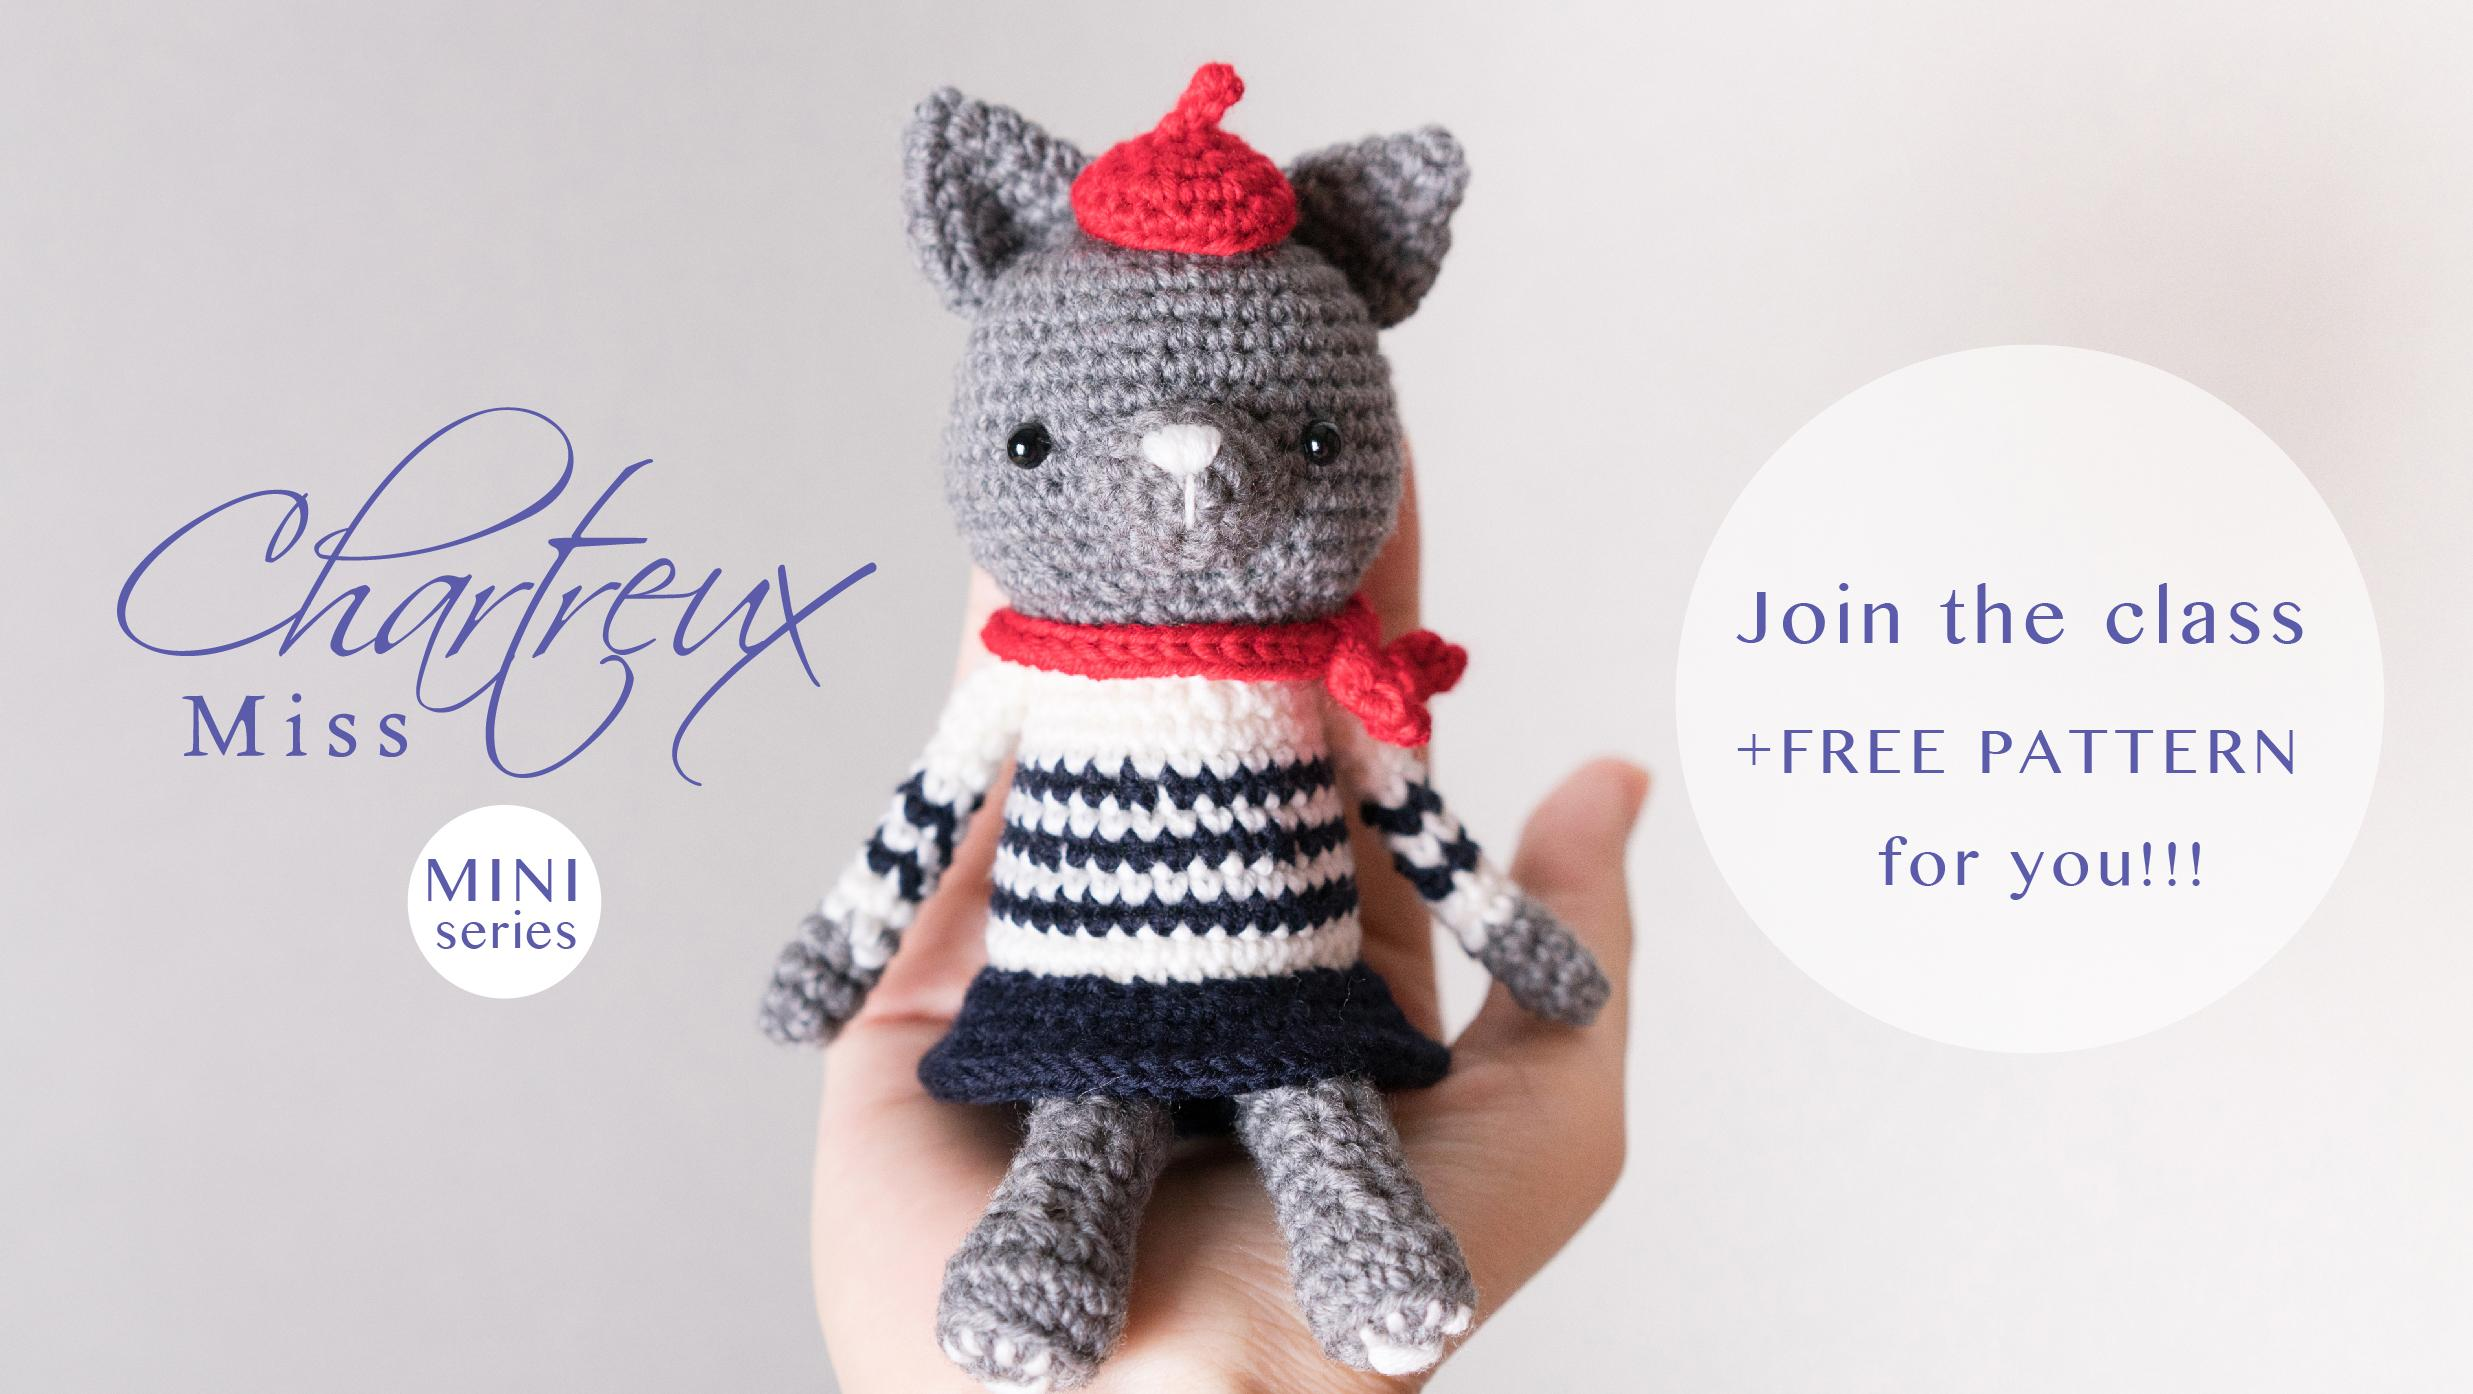 Free Pattern Making Crochet Doll Step By Stepmiss Chartreux Mini